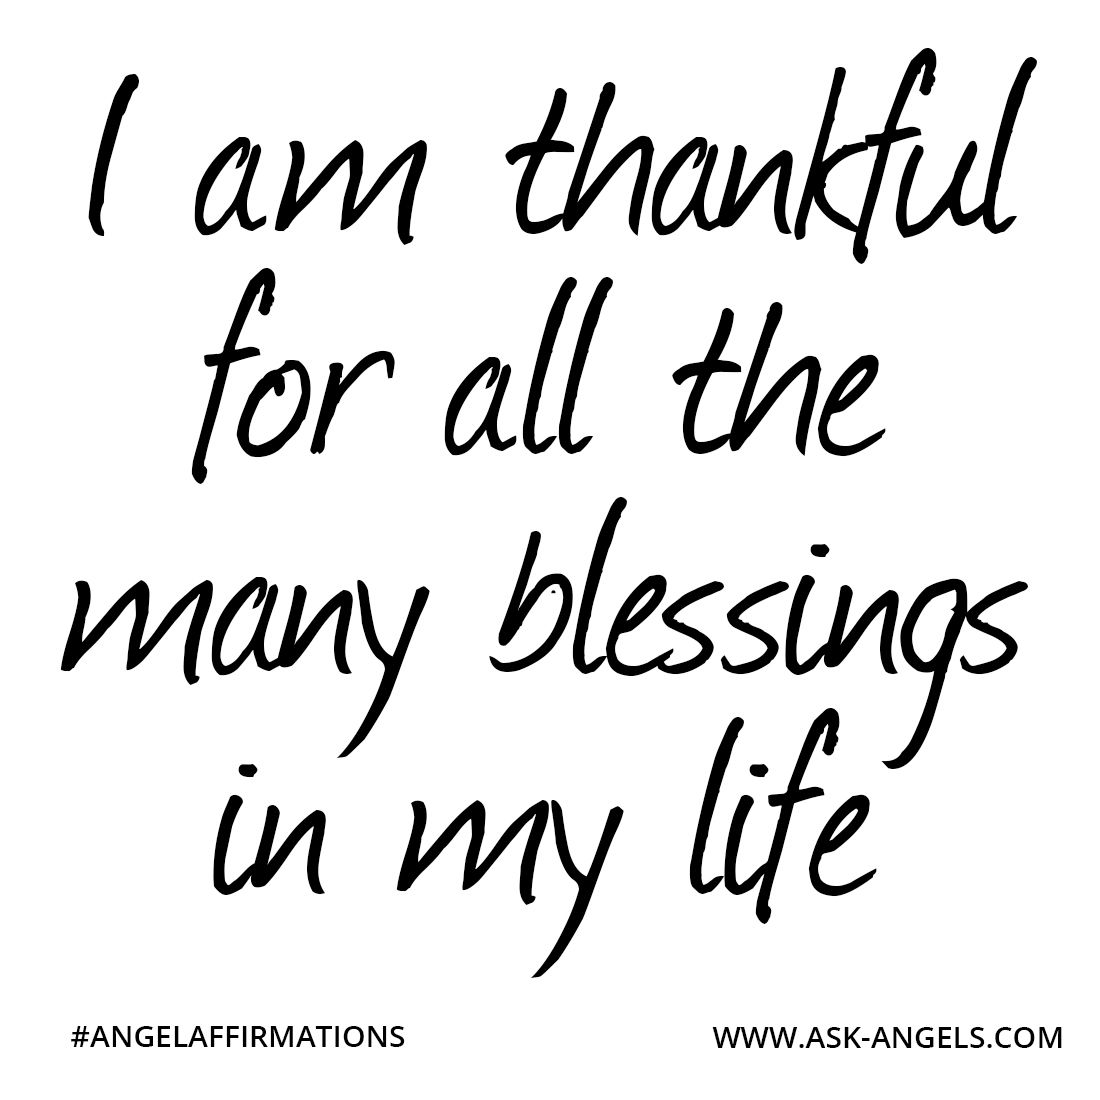 i am thankful for all the many blessings in my life